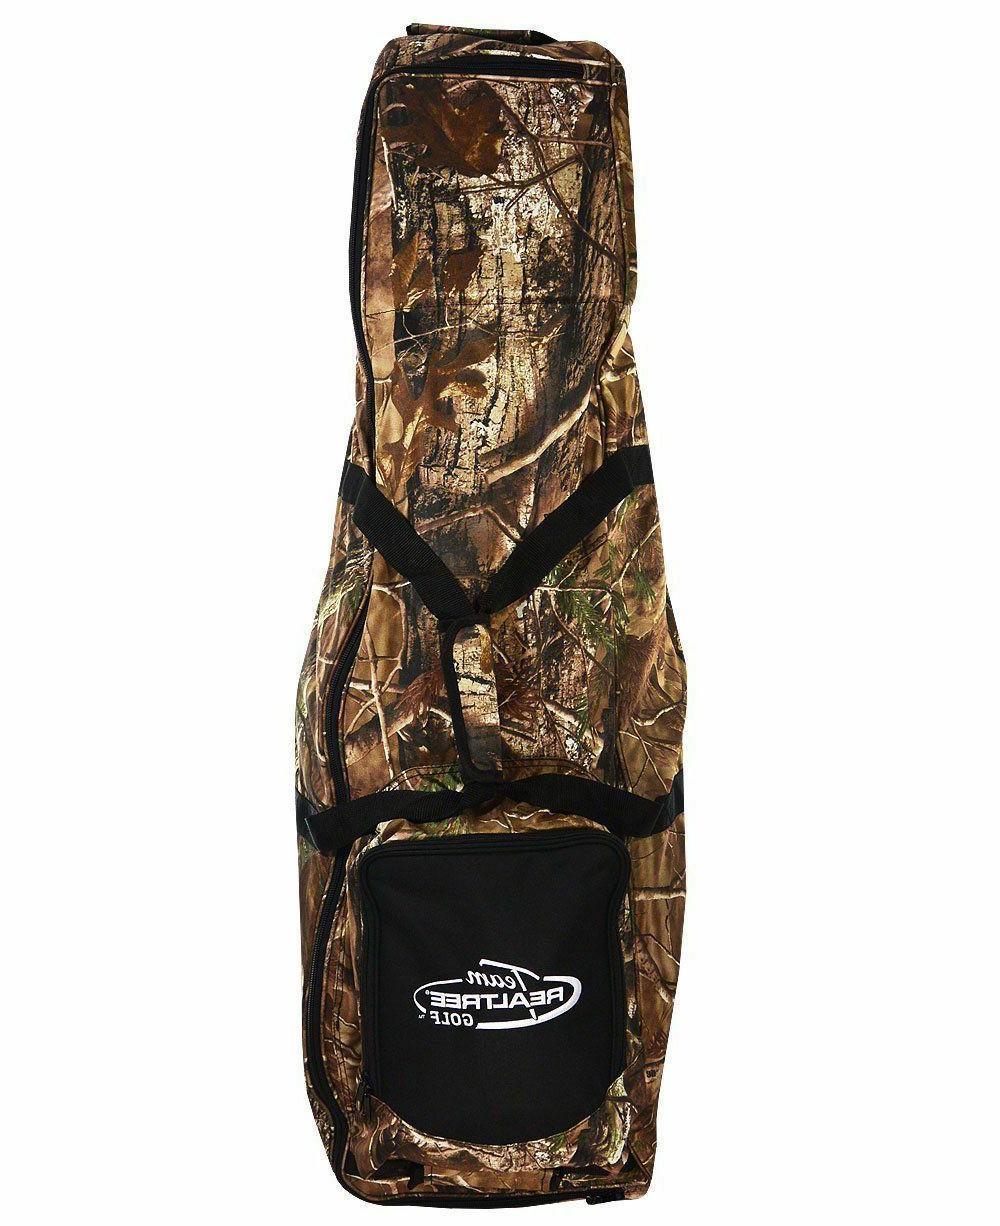 TEAM REALTREE Soft Side Golf Club Rolling Travel Bag for Air